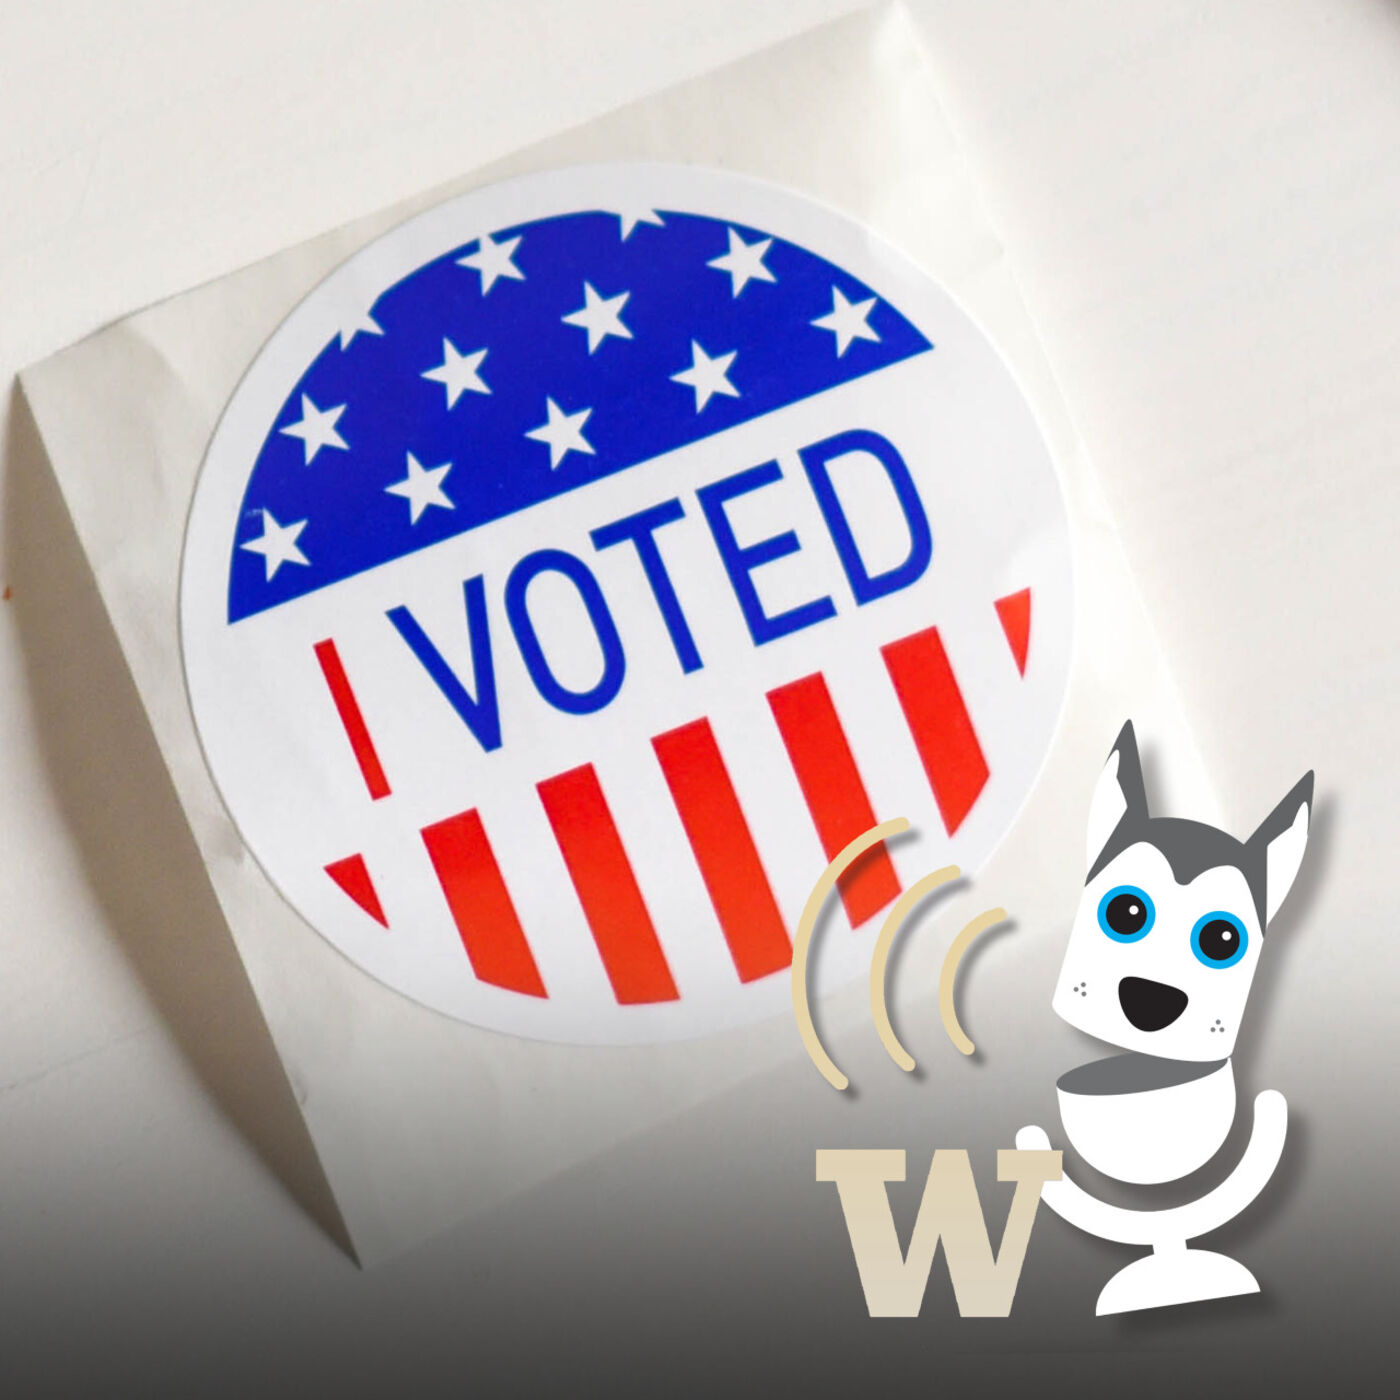 The Sacred and Deeply Personal Act of Voting